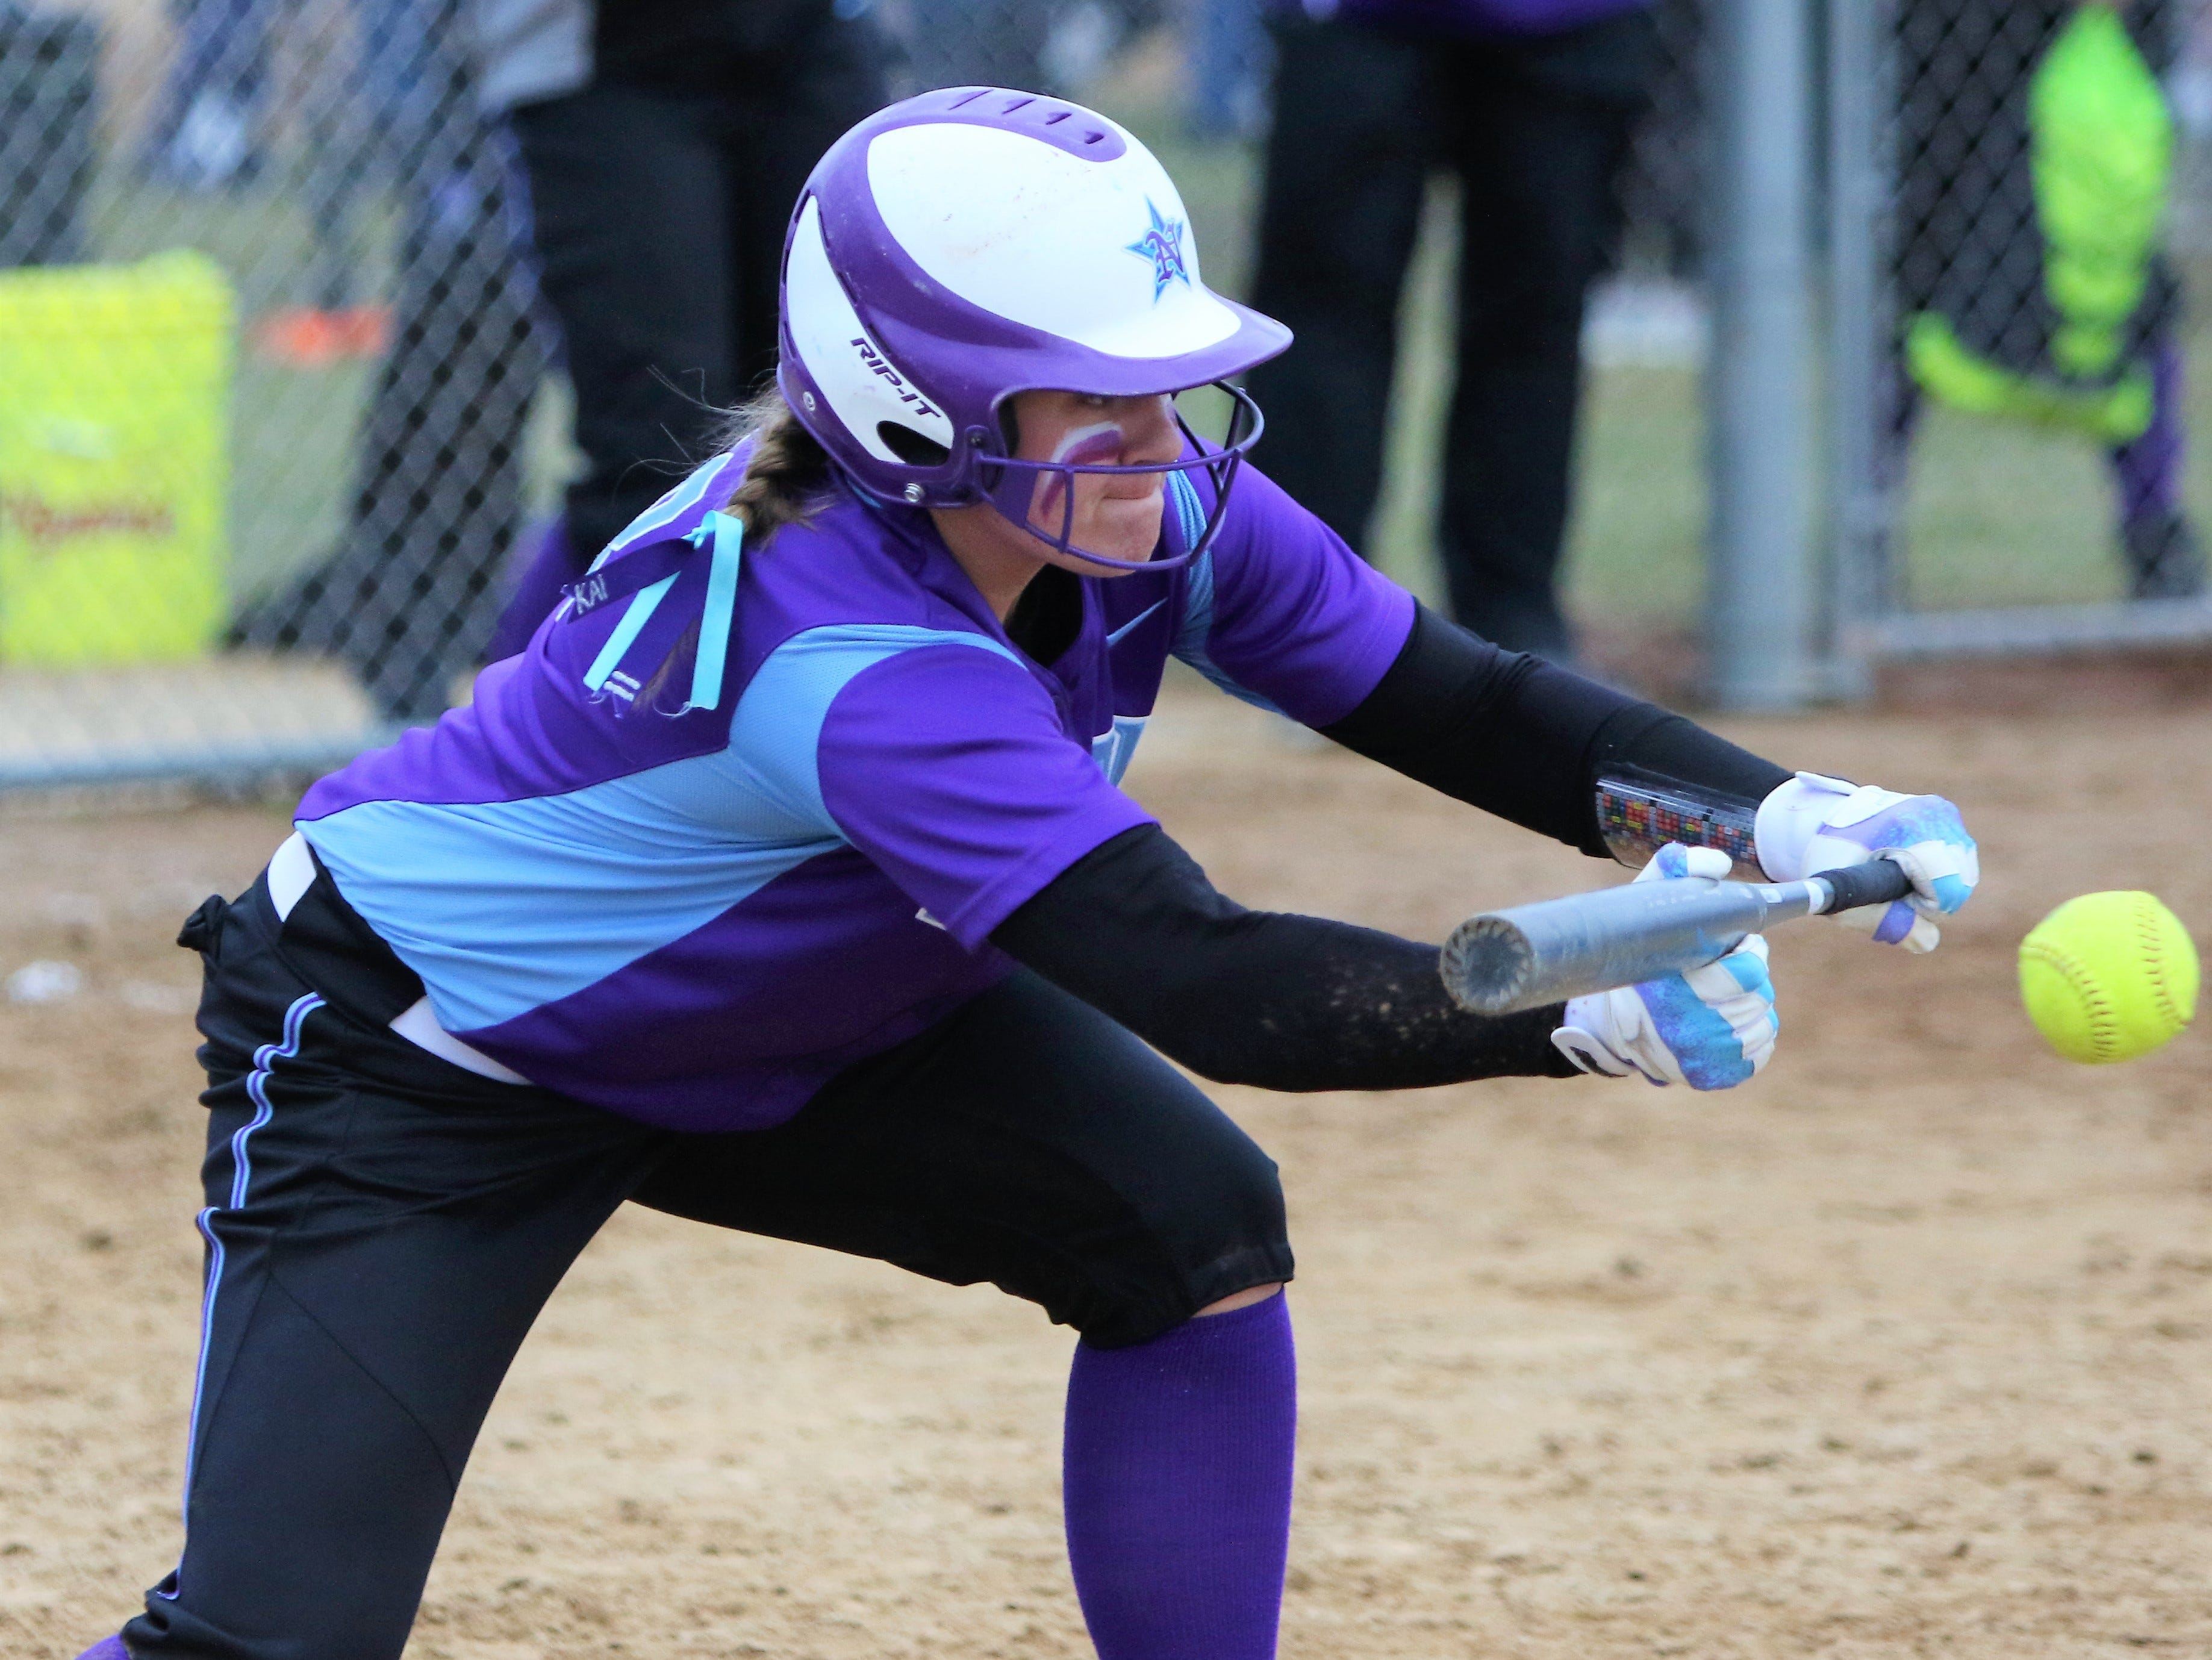 Waukesha North senior Maddy Anderson gets a bunt down to score a run against Muskego on April 12, 2019.